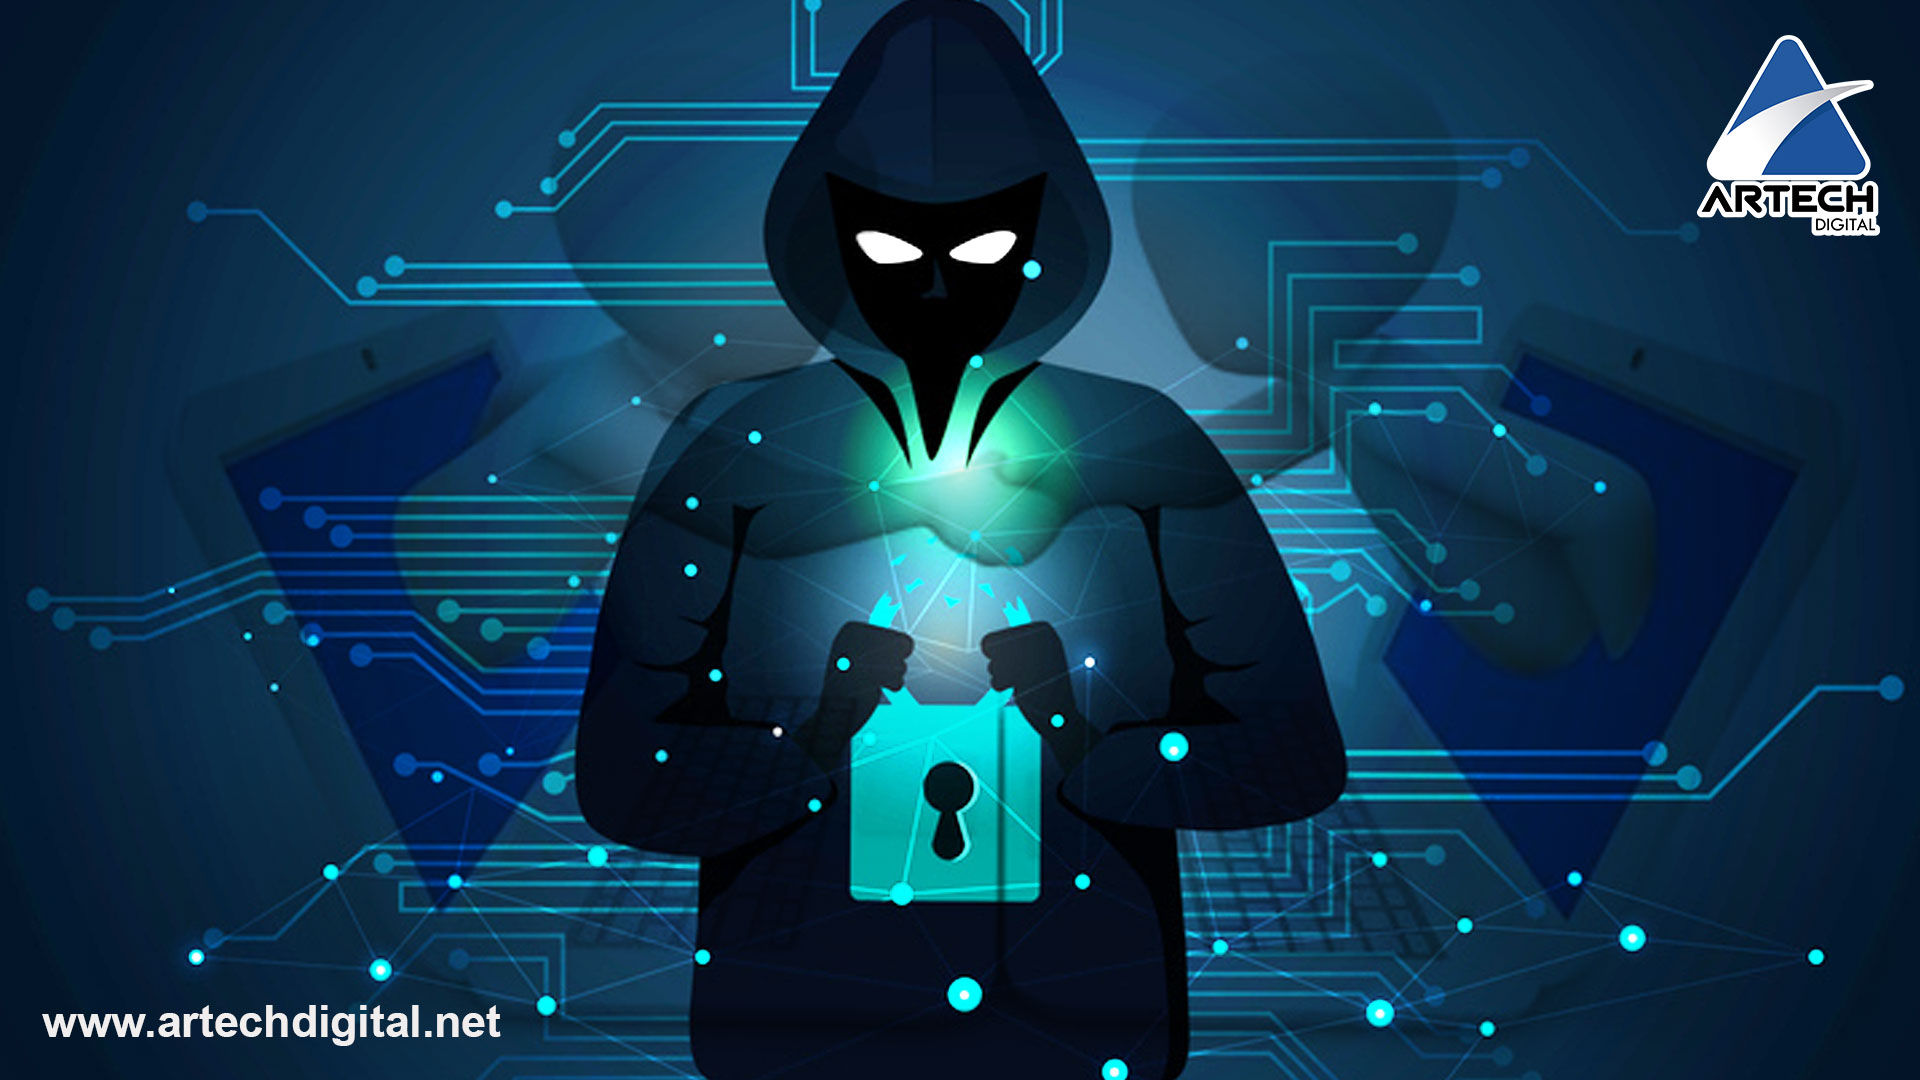 Fraude online phishing - Artech Digital